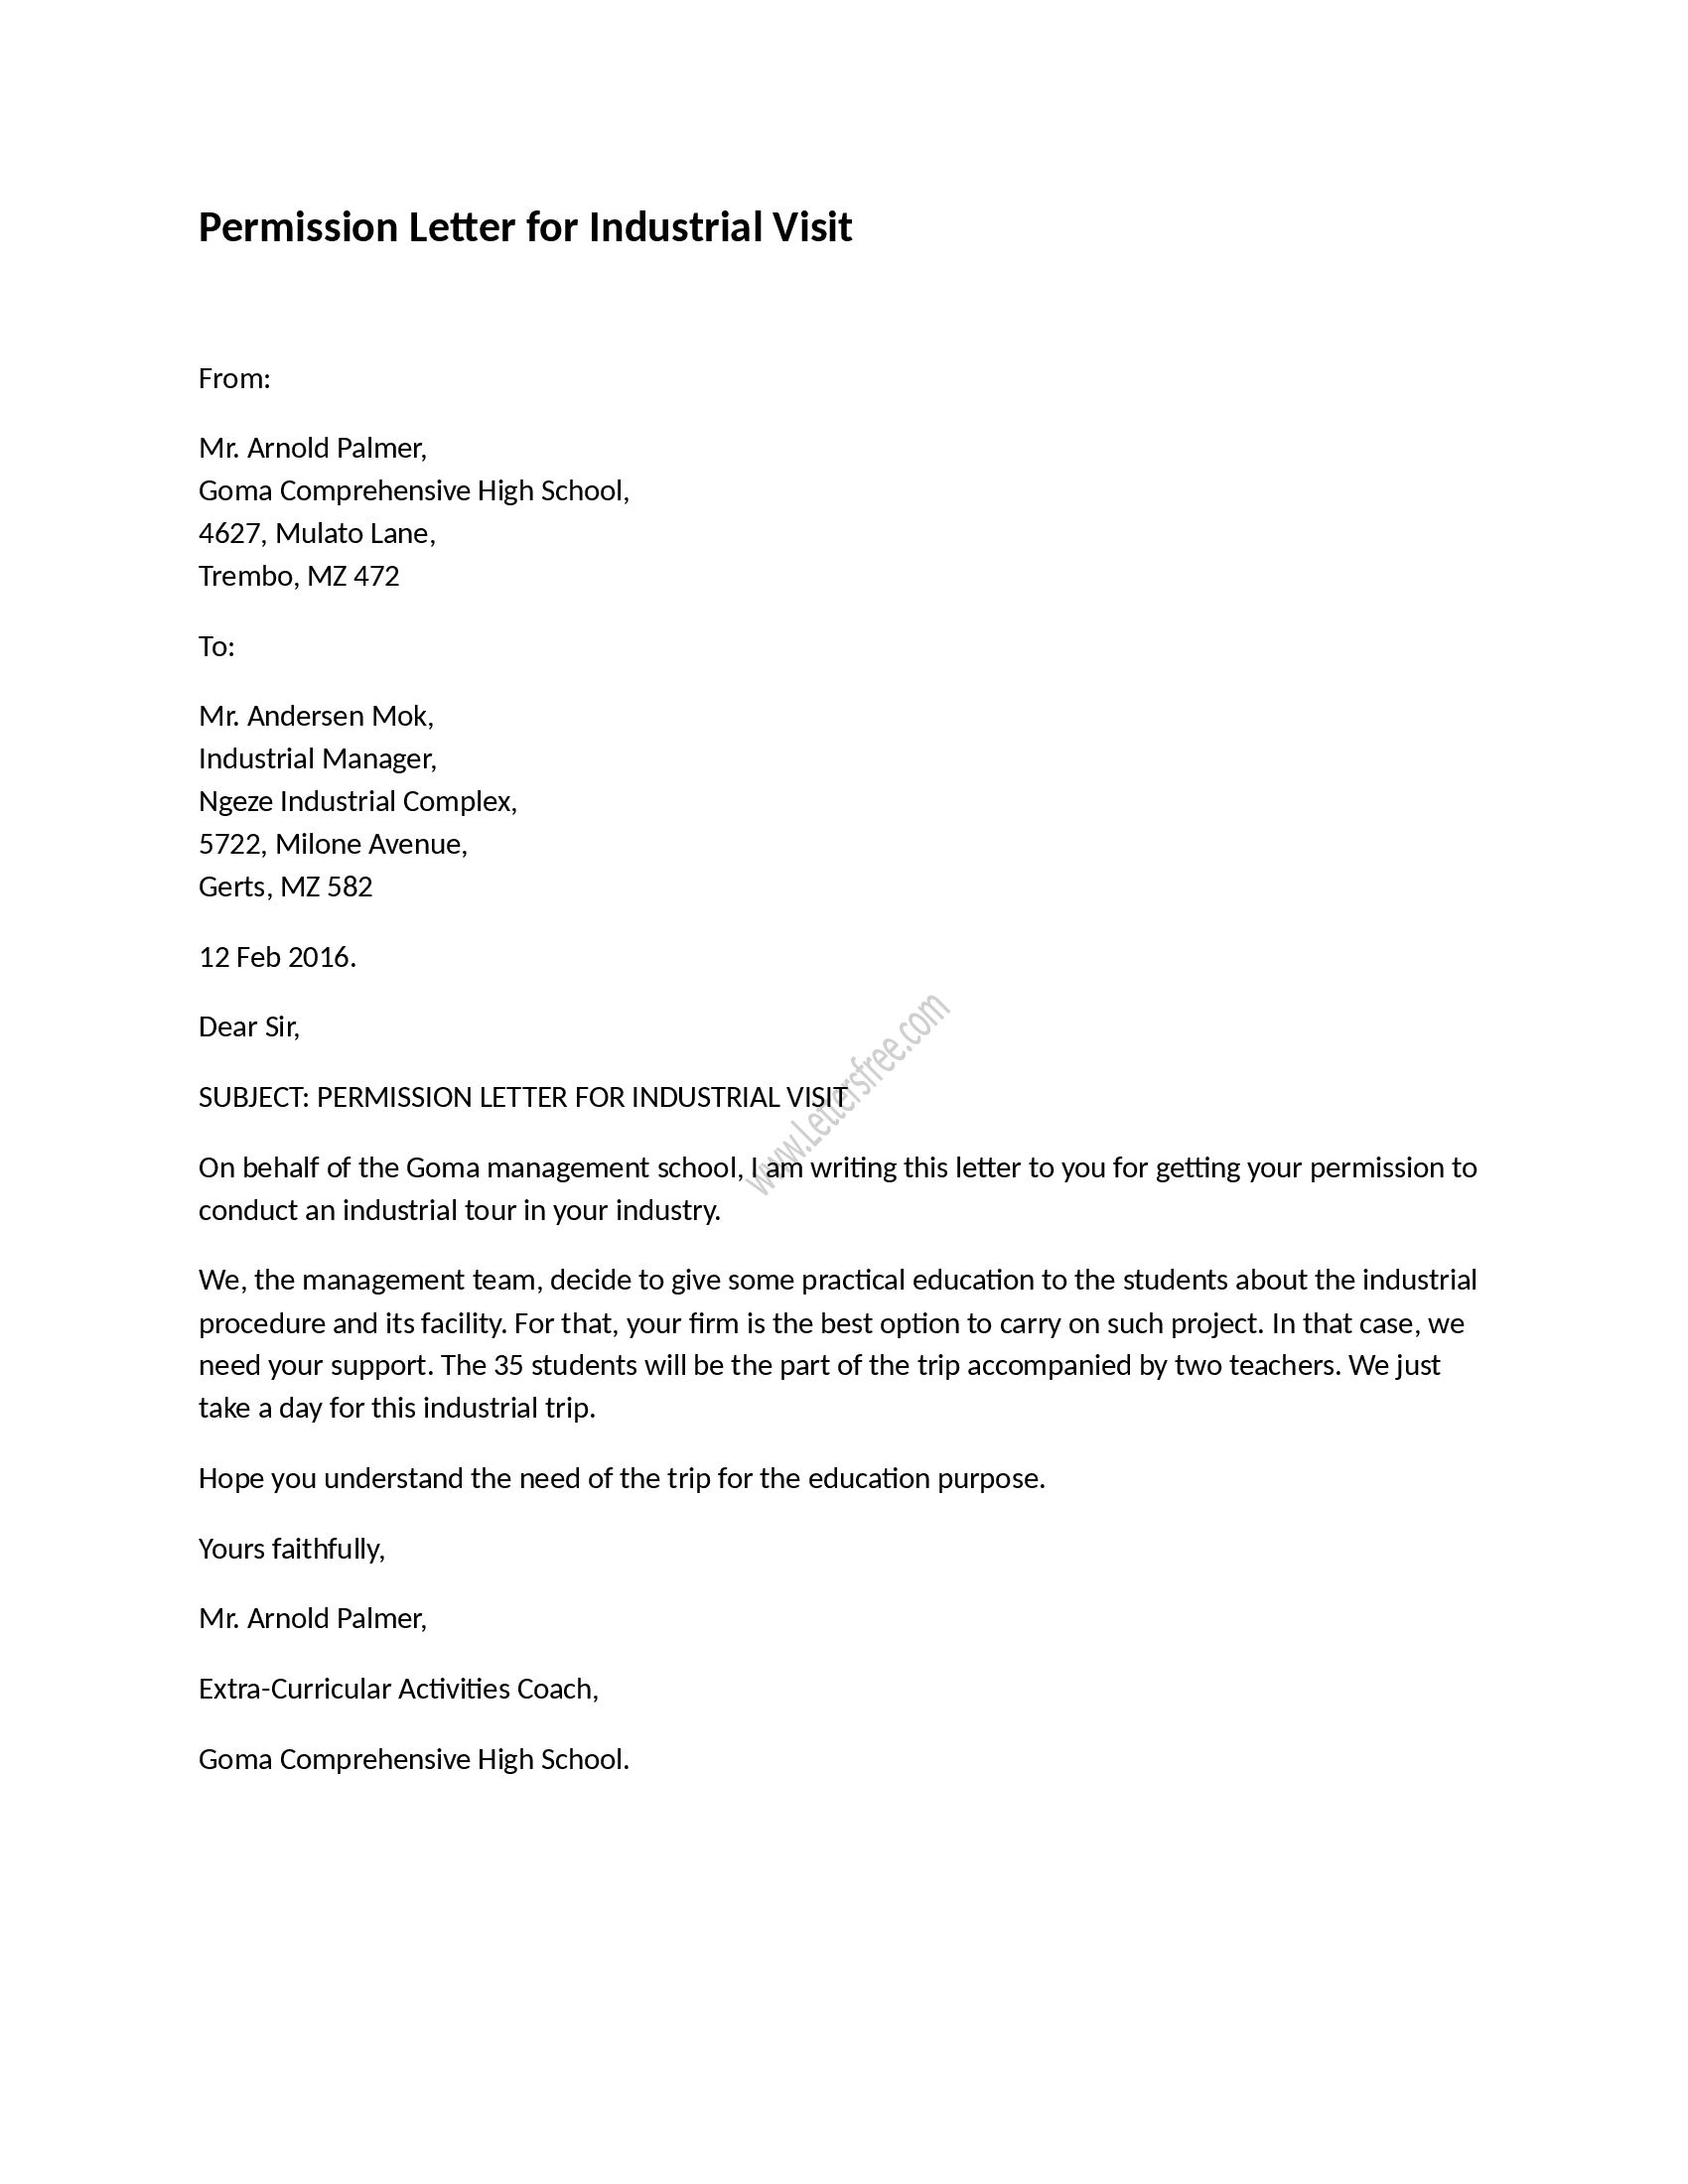 Letter to Allow Child to Travel Template - Permission Letter for Industrial Visit Pinterest